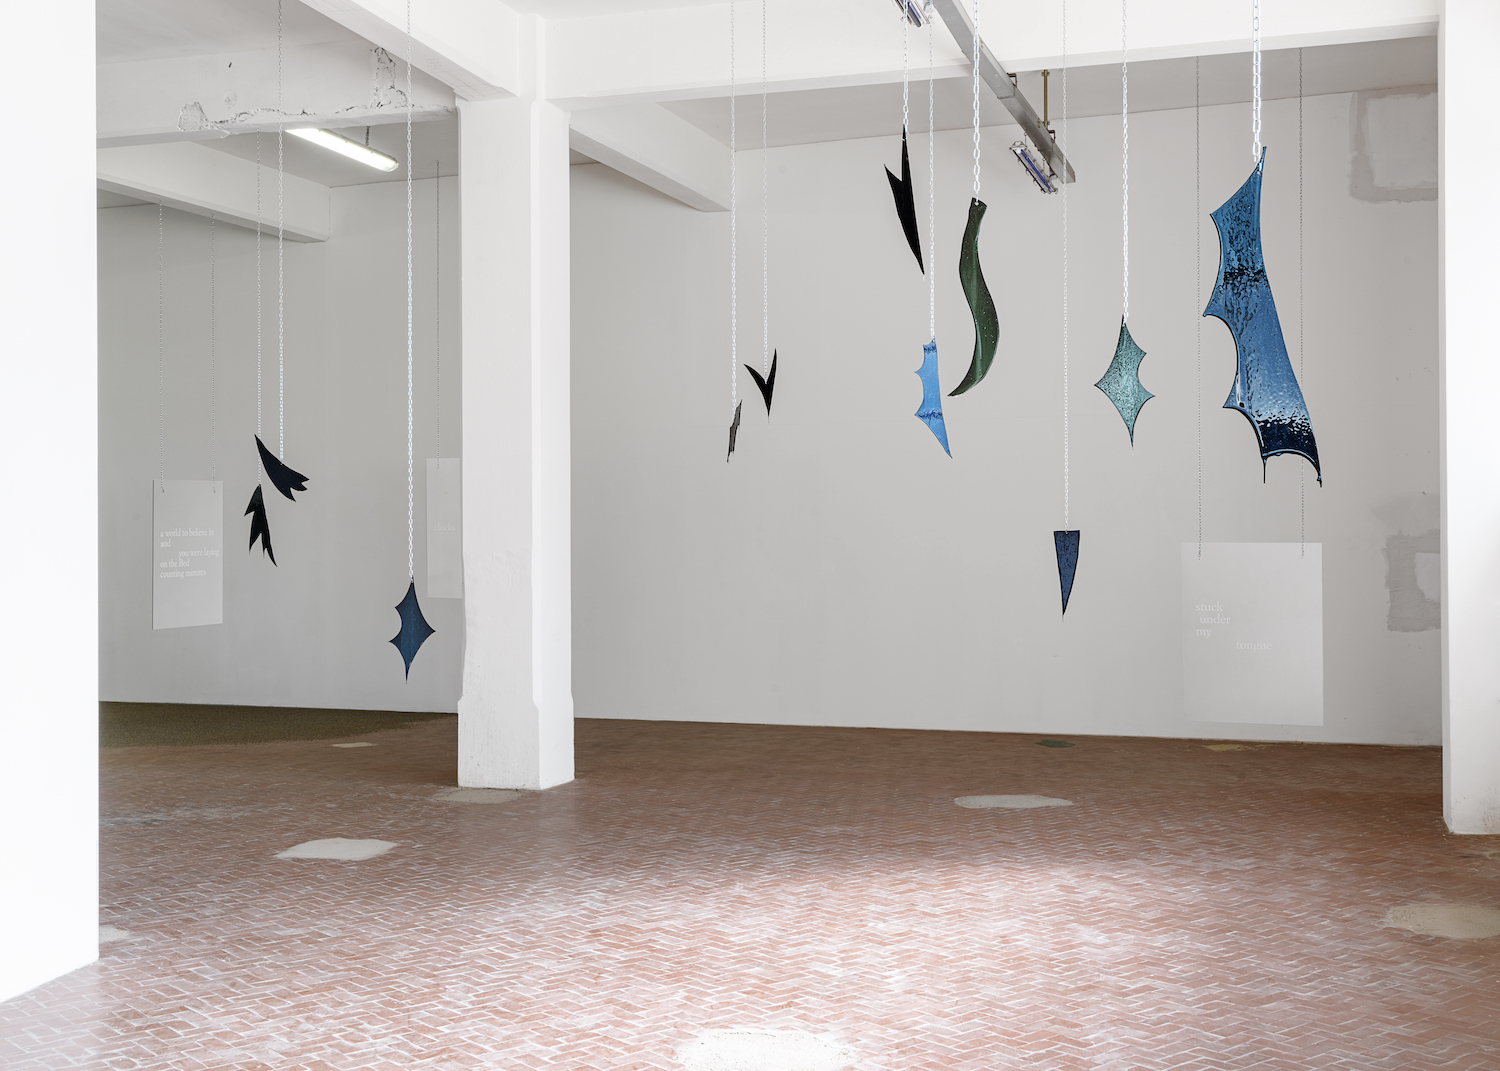 Tarek Lakhrissi, Ordered, Horny and Horned, 2021. Installation view. VEDA, Florence, IT. Photographer: Flavio Pescatori.